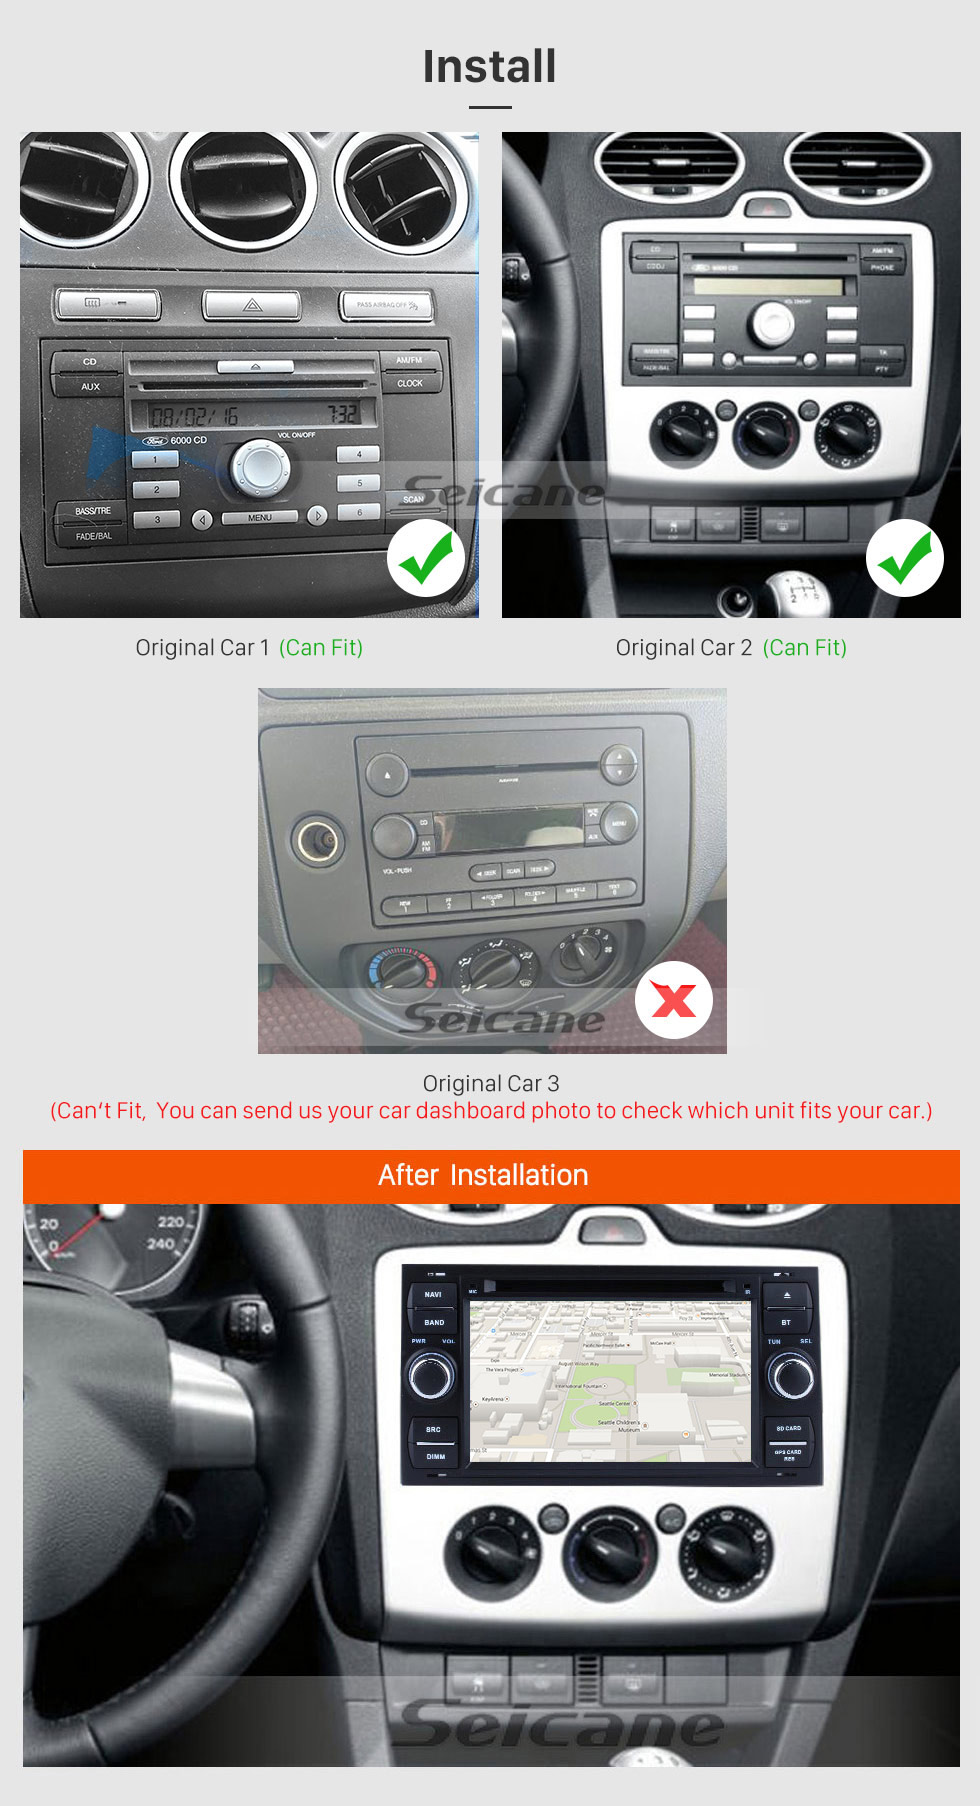 Seicane Aftermarket GPS Android 8.0 Radio DVD Player for 2004 2005 2006 2007 2008 Ford Focus Support 3D Navigation Bluetooth USB WIFI Mirror Link DVR Rearview Camera 1080P Video